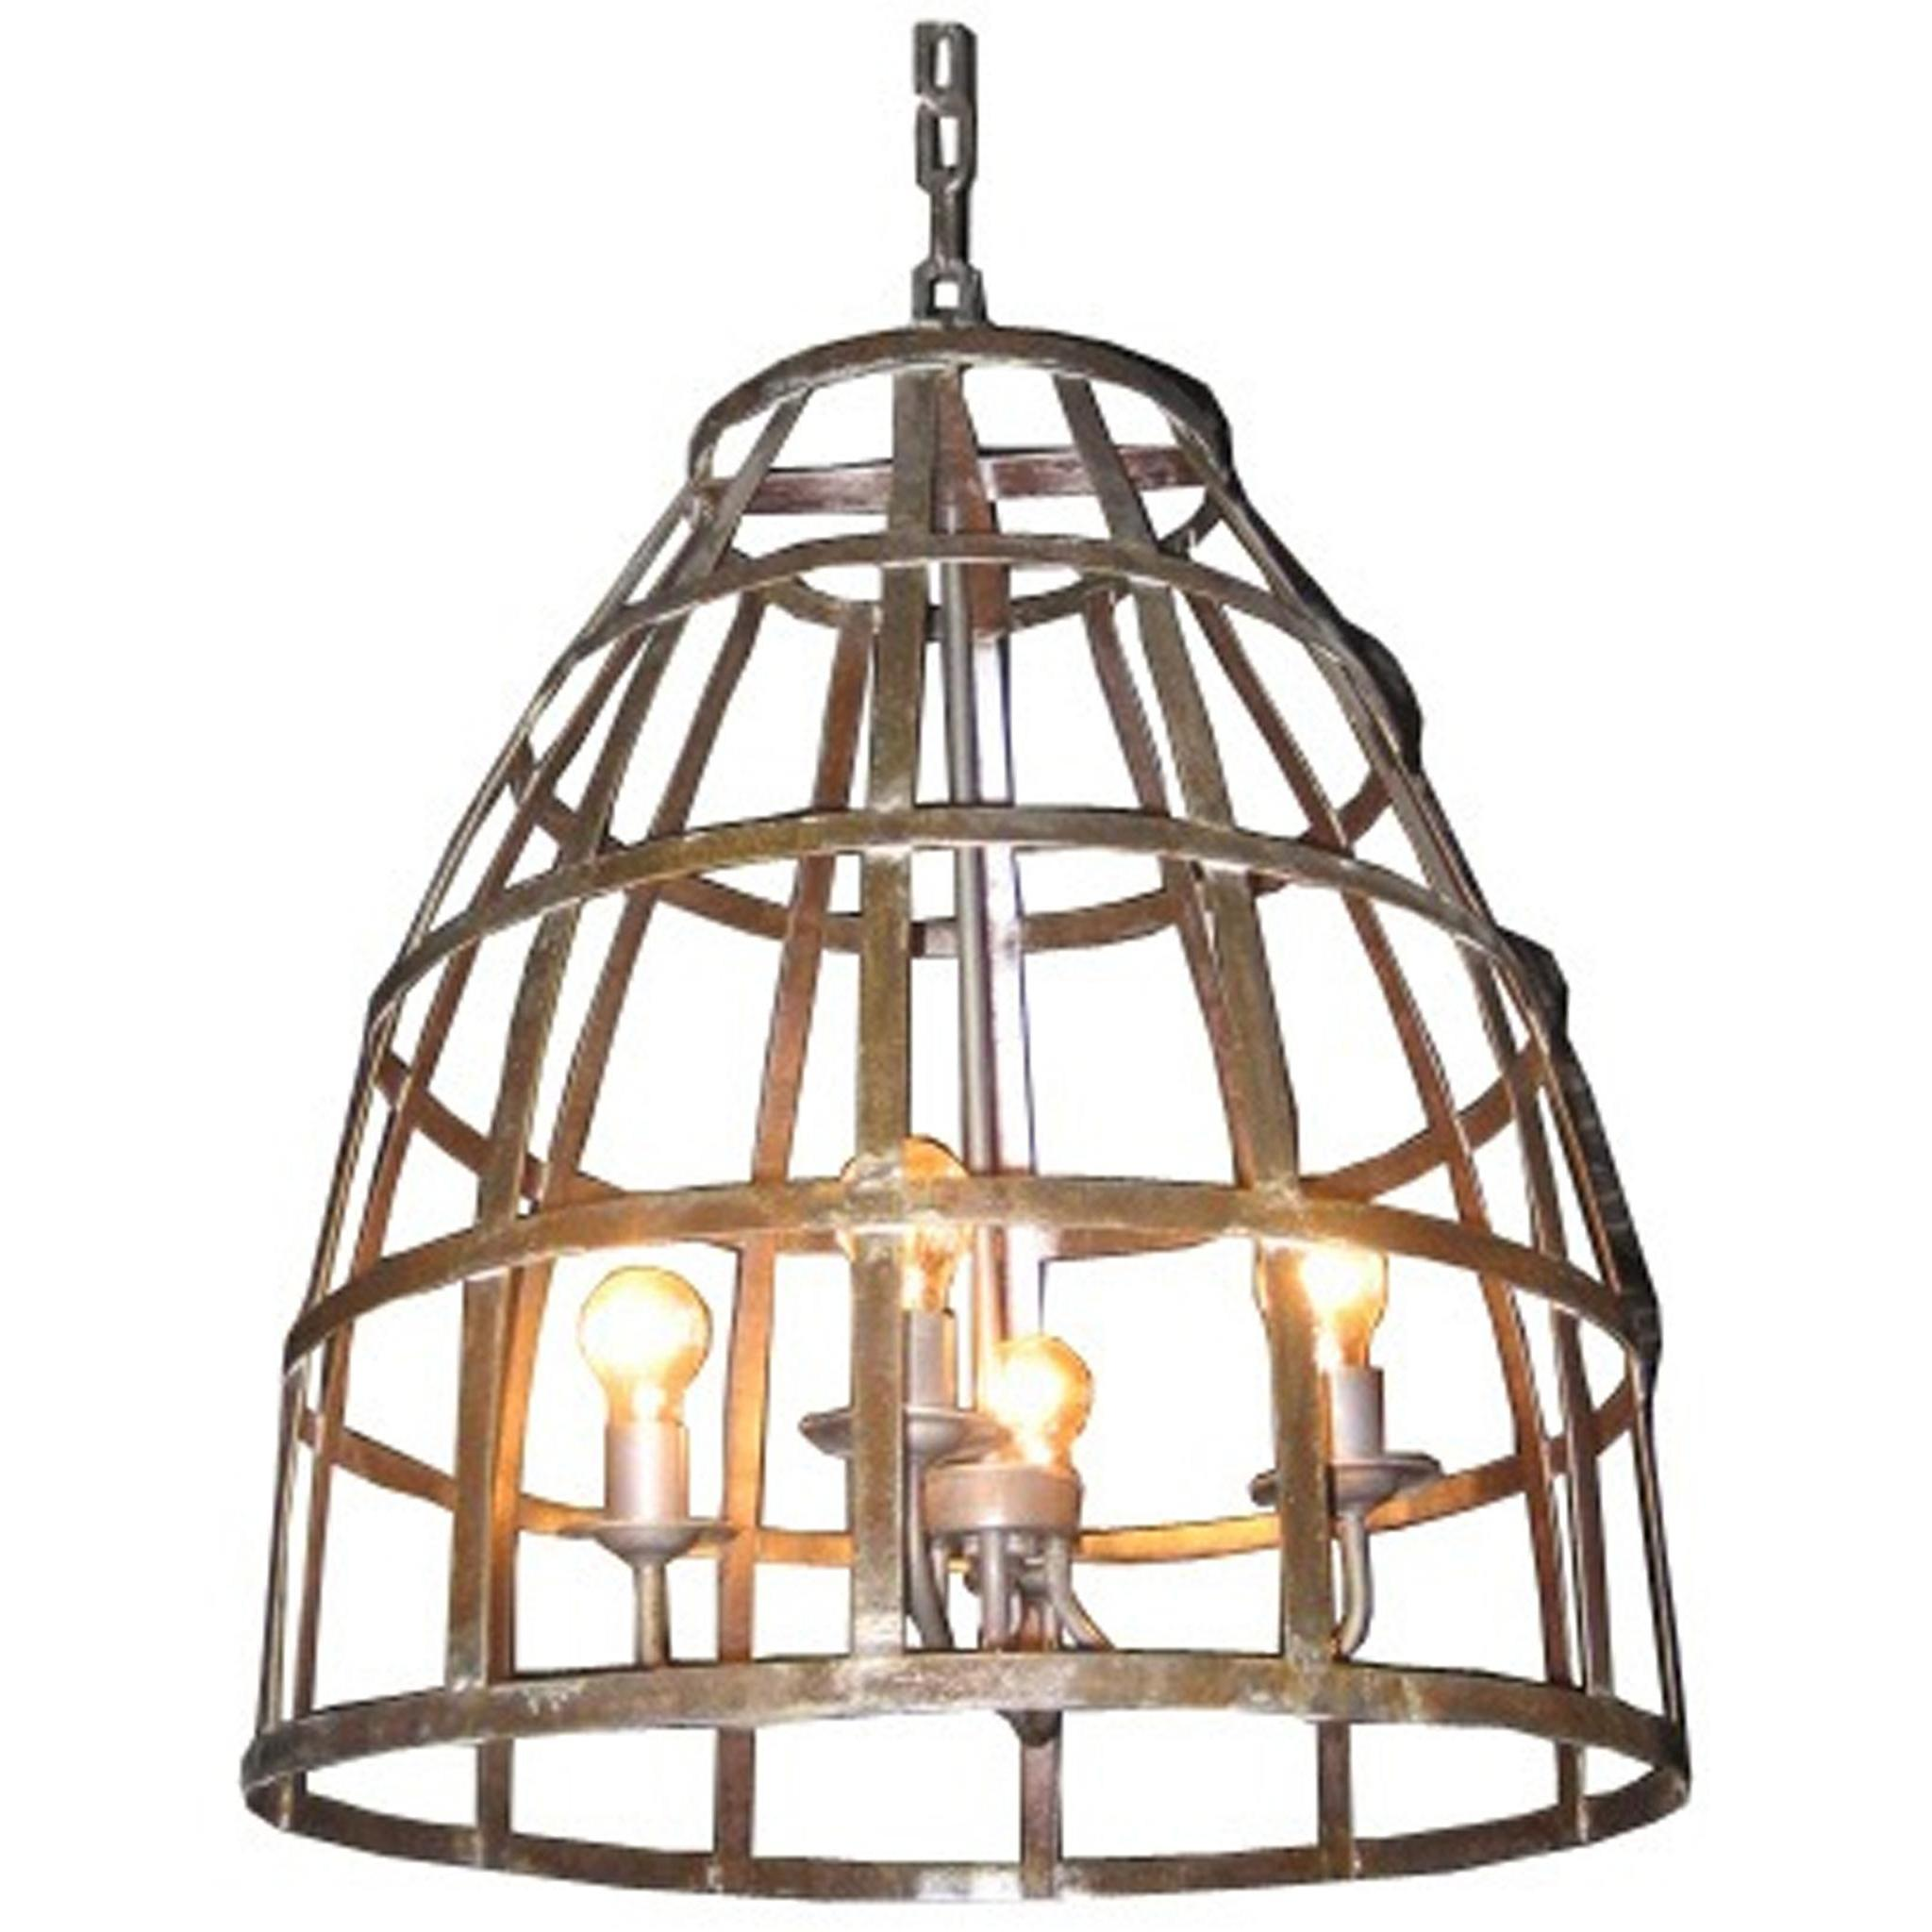 noi birdcage chandelier lighting. Black Bedroom Furniture Sets. Home Design Ideas